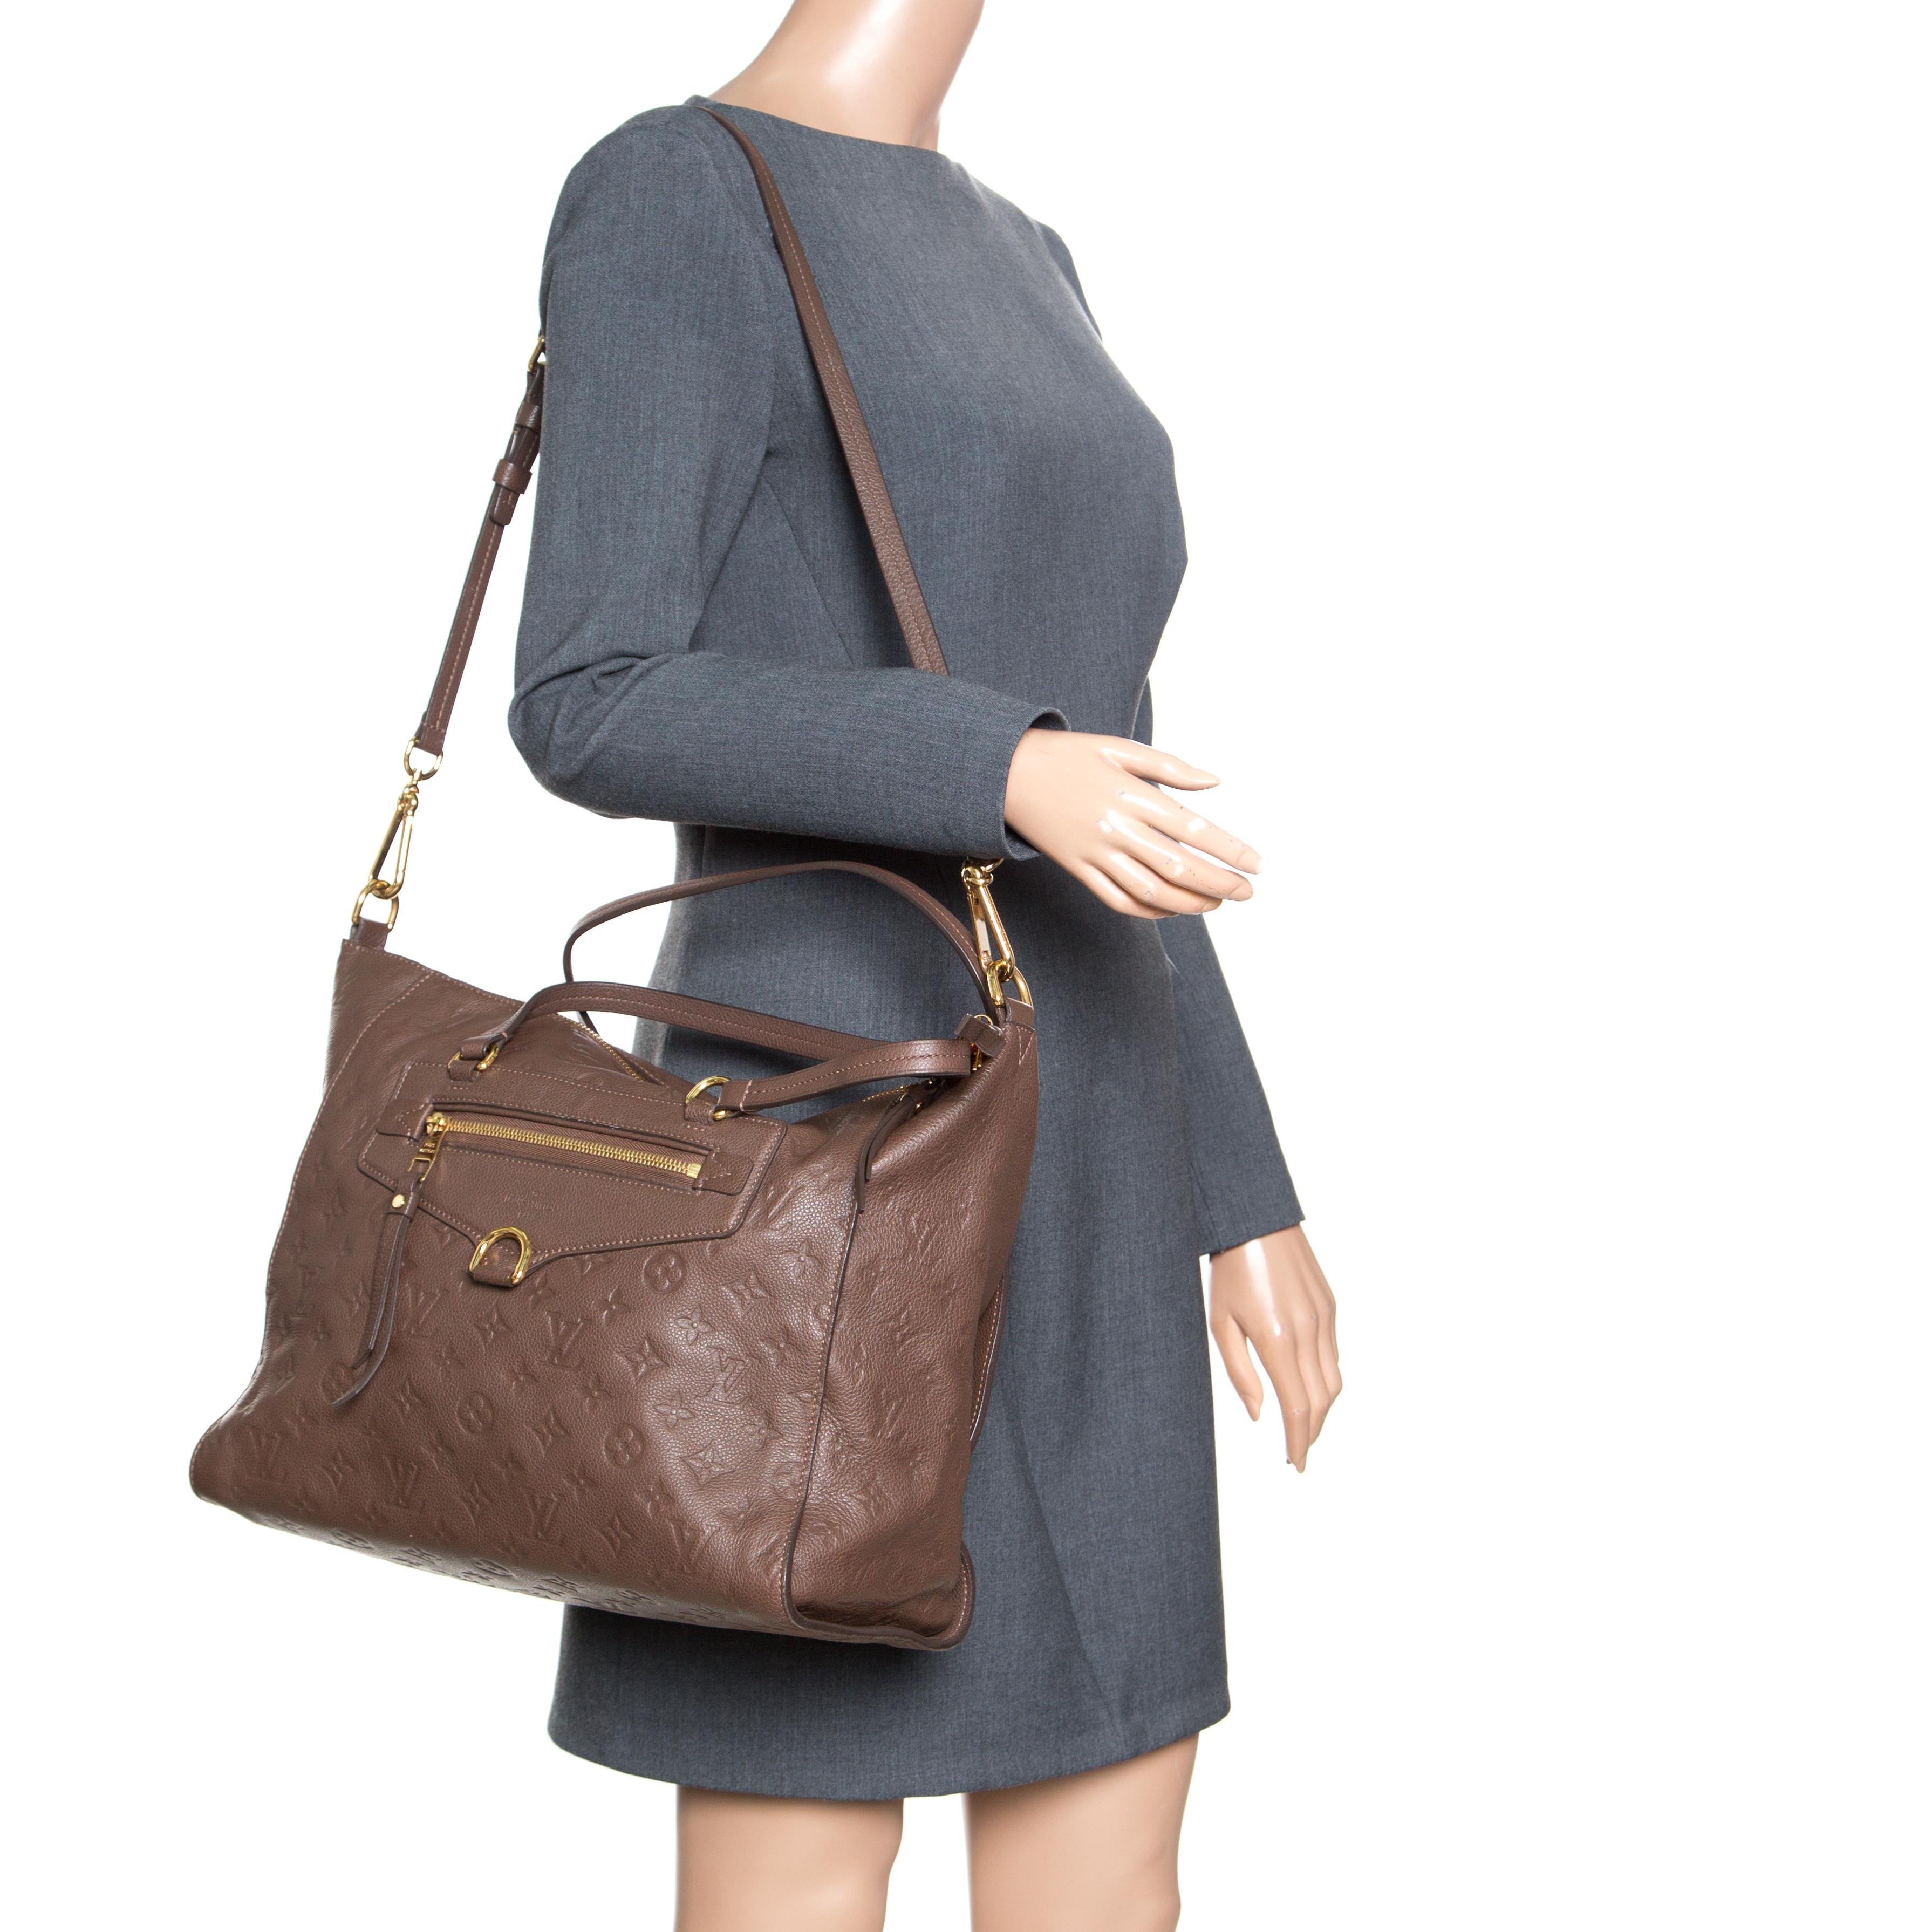 Louis Vuitton - Brown Ombre Monogram Empreinte Leather Lumineuse Pm Bag -  Lyst. View fullscreen 69758b86f48ab